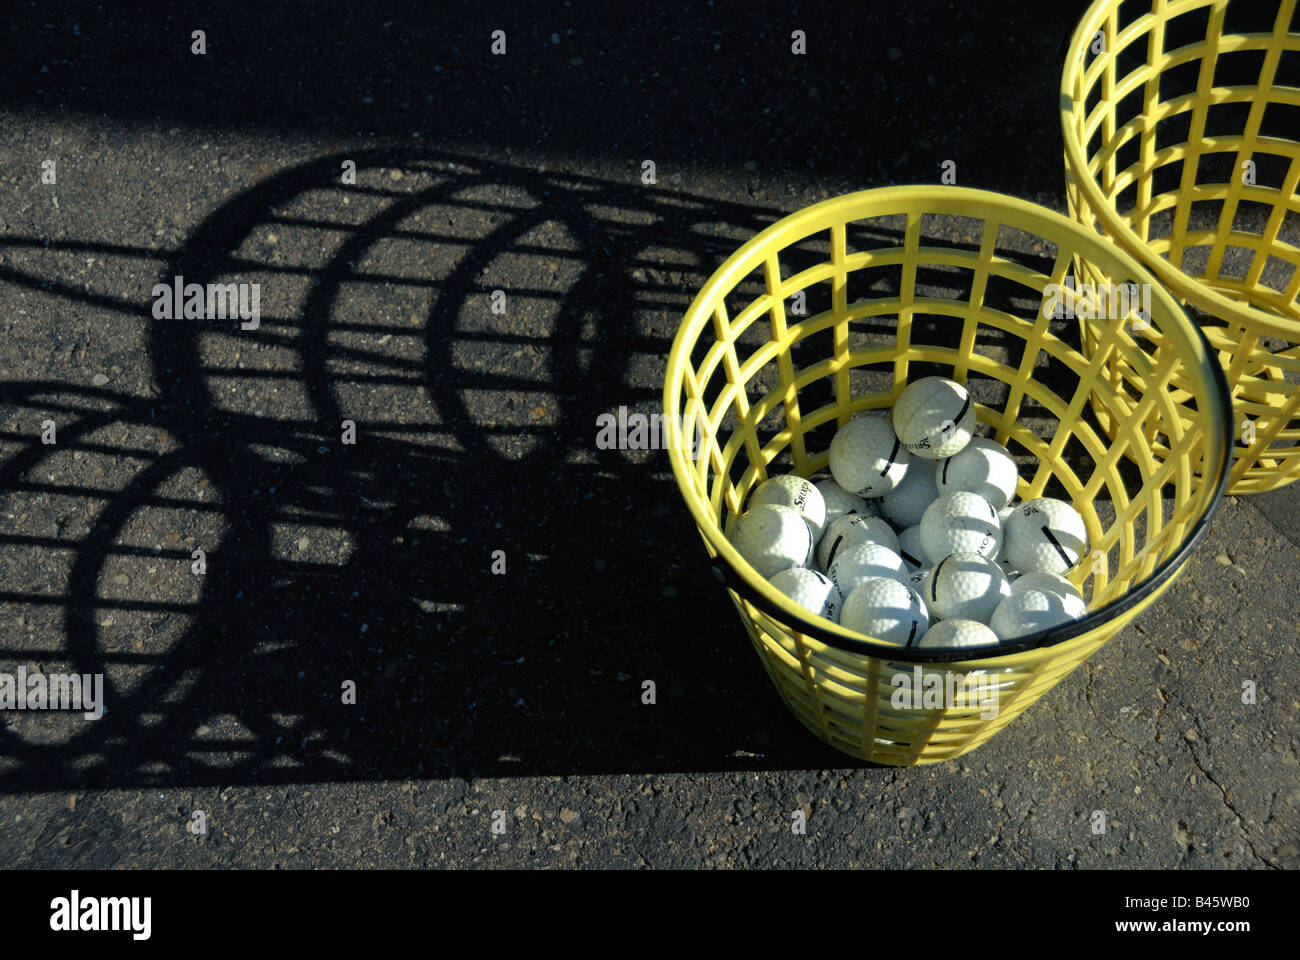 A bucket of golf balls at a golf driving range casts interesting shadows in the midday sun.Stock Photo